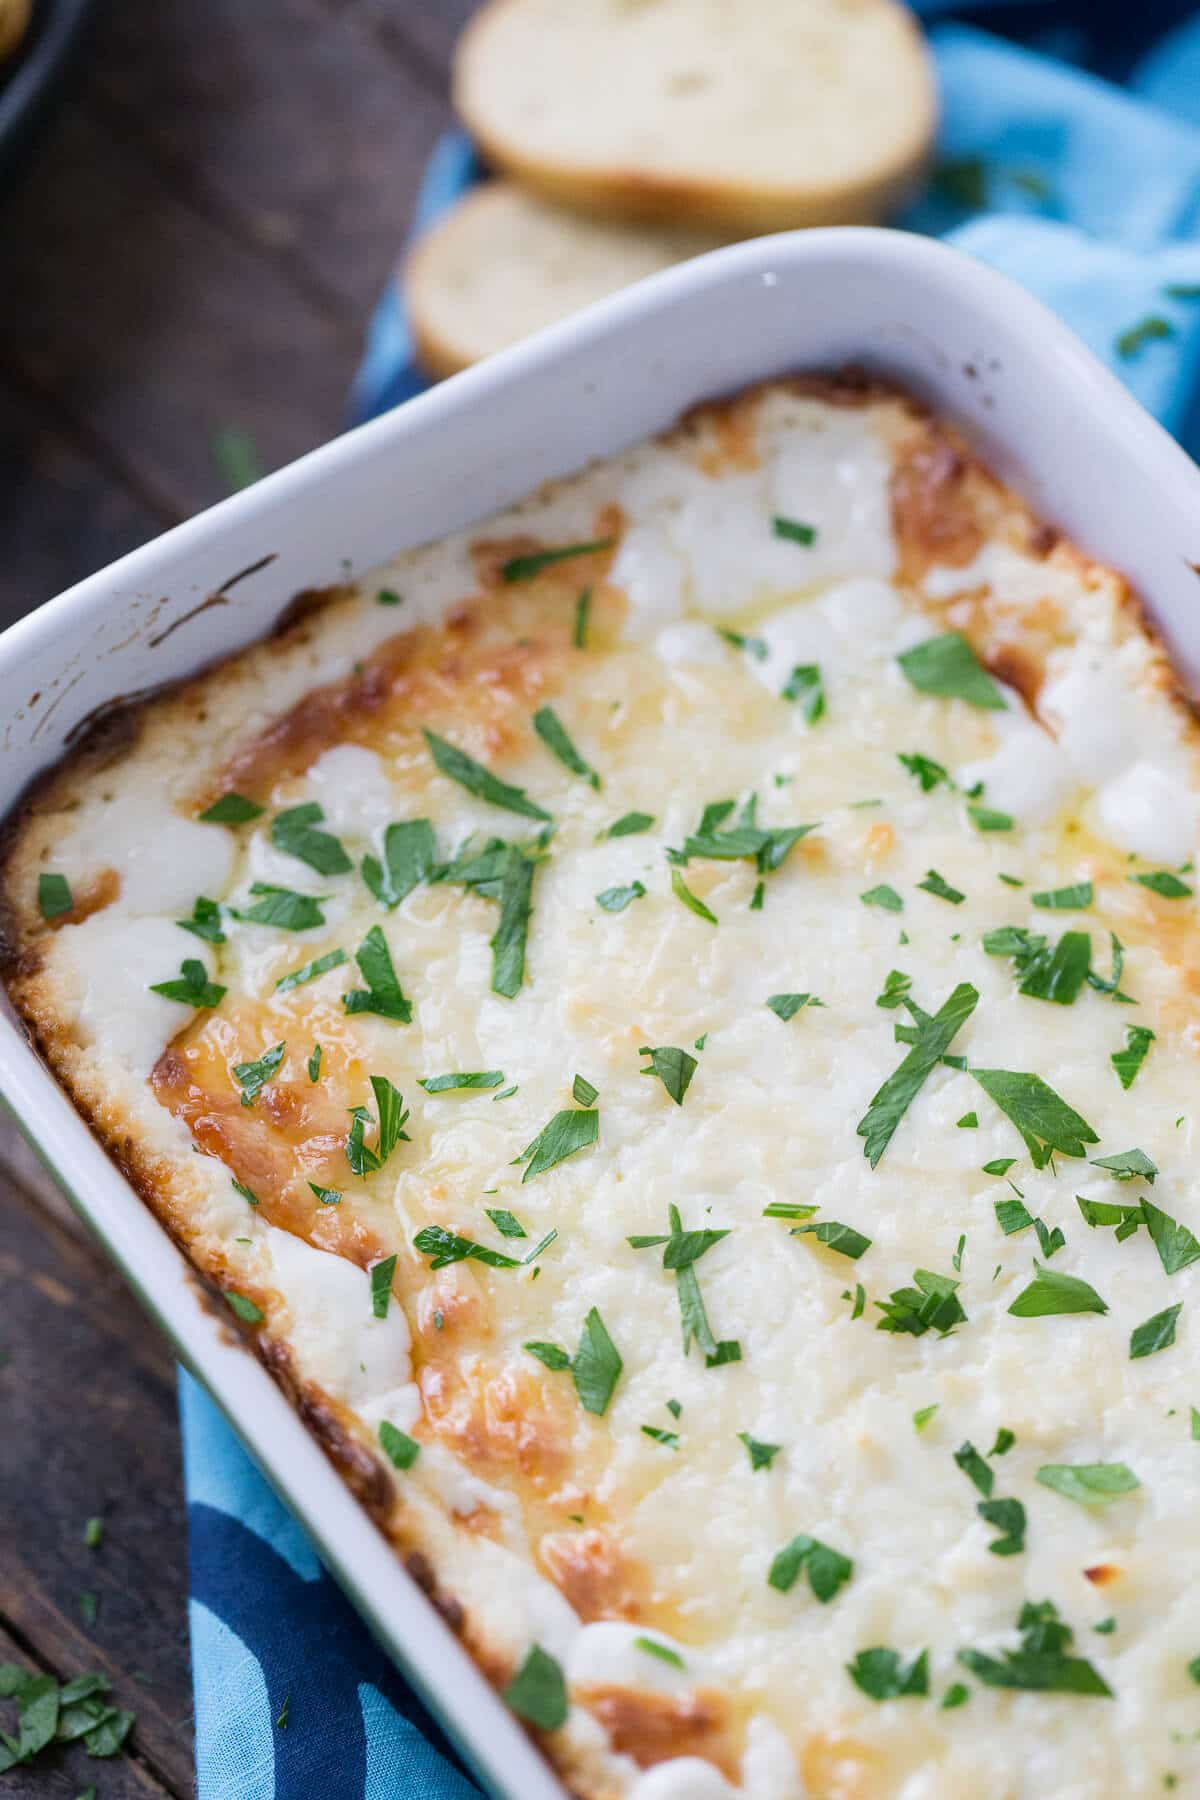 Raise your hand if garlic bread is your thing! This cheesy garlic bread dip is going to rock your world!